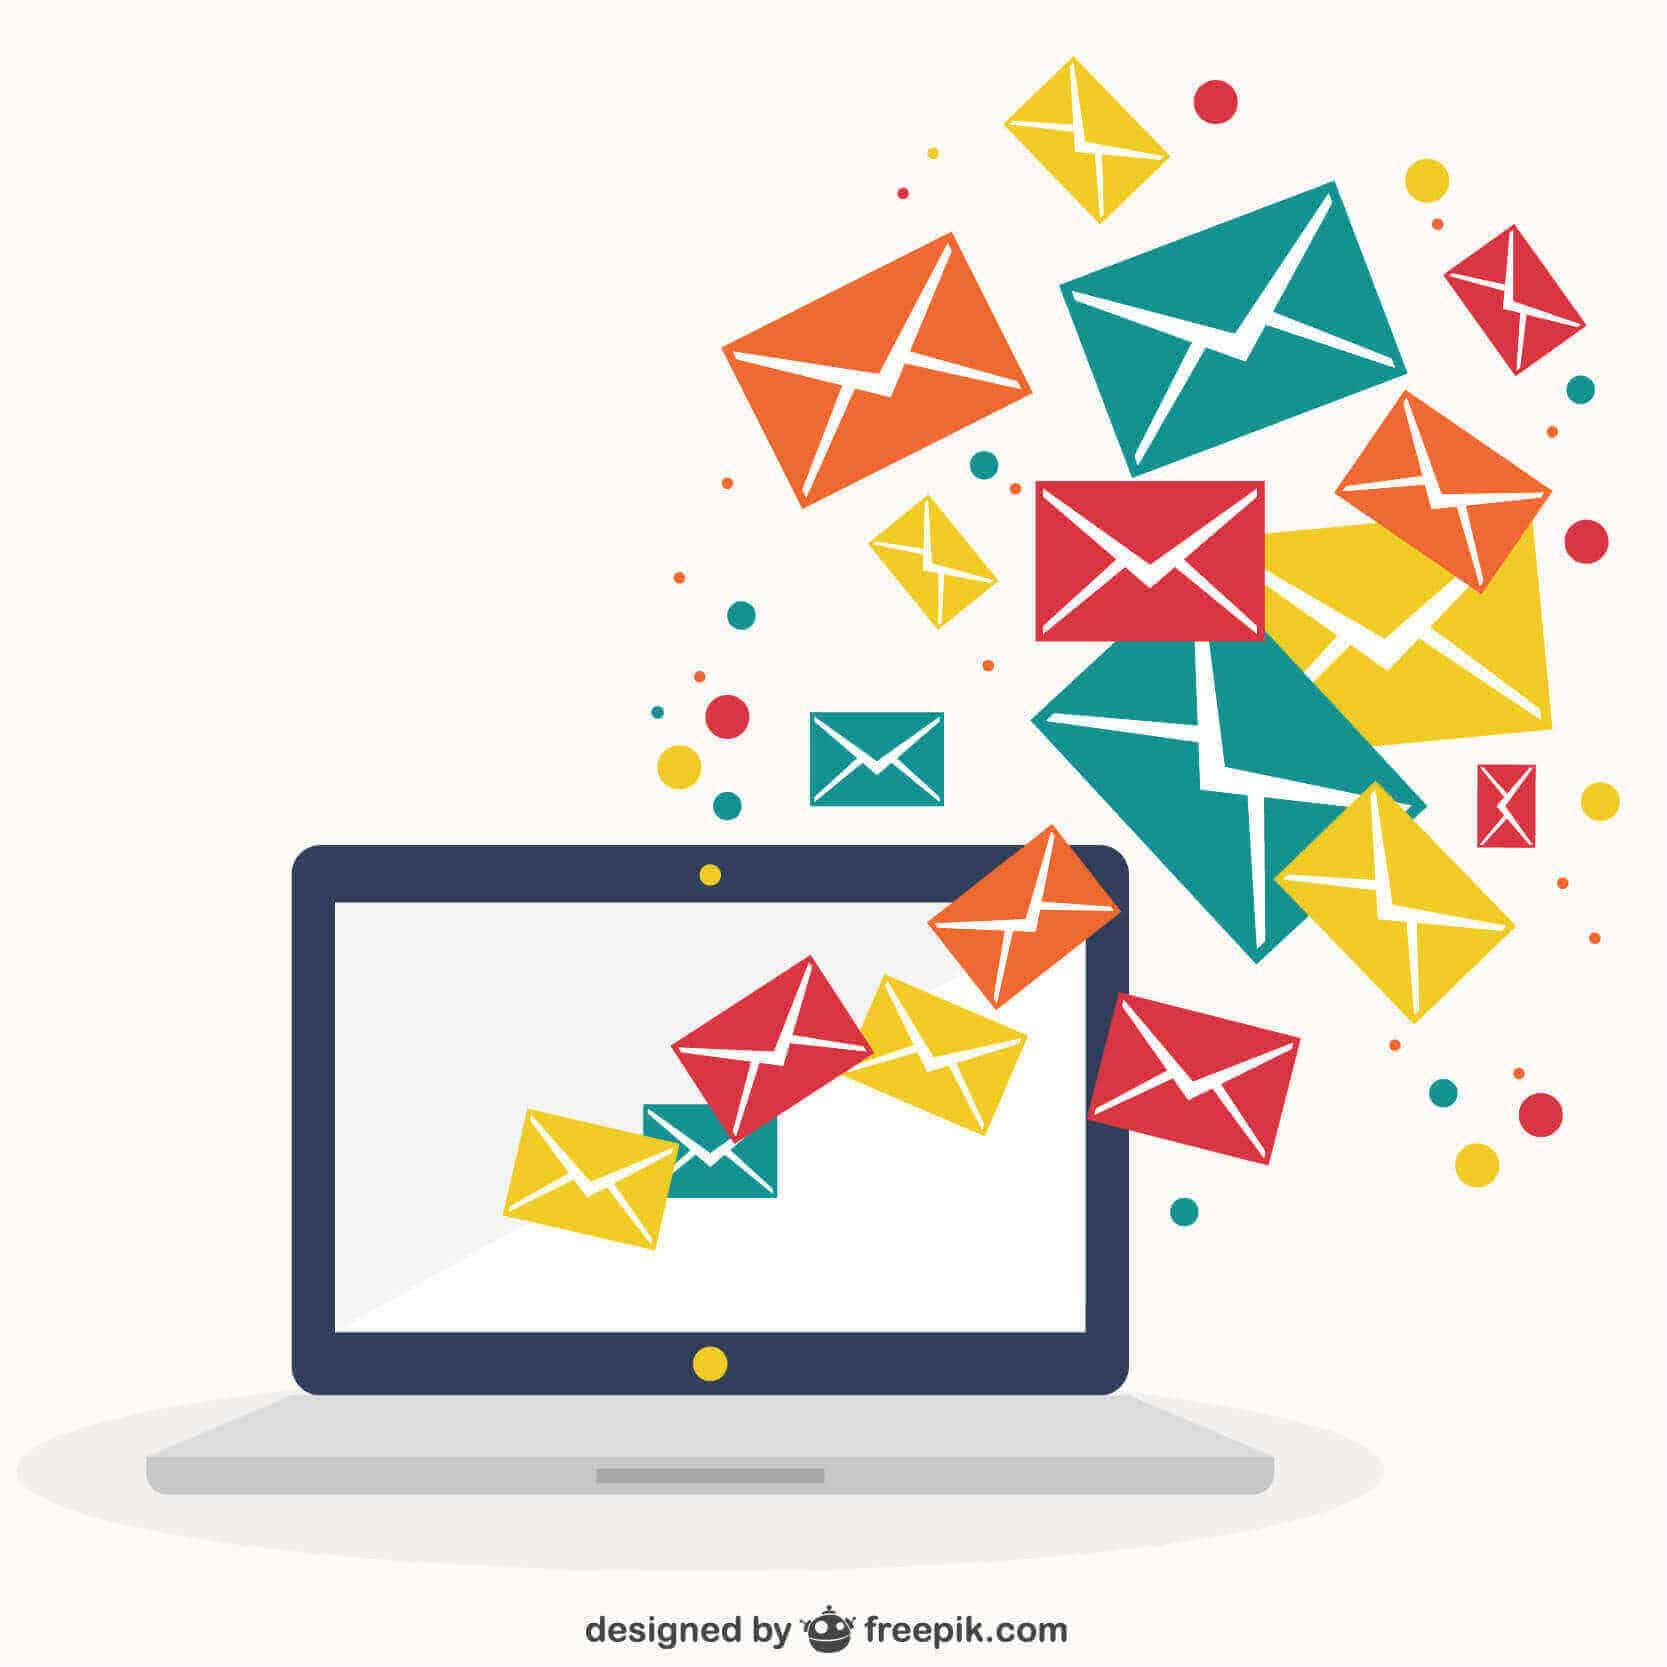 Should You Use Microsoft Outlook To Send Mass Emails To Your Customers?